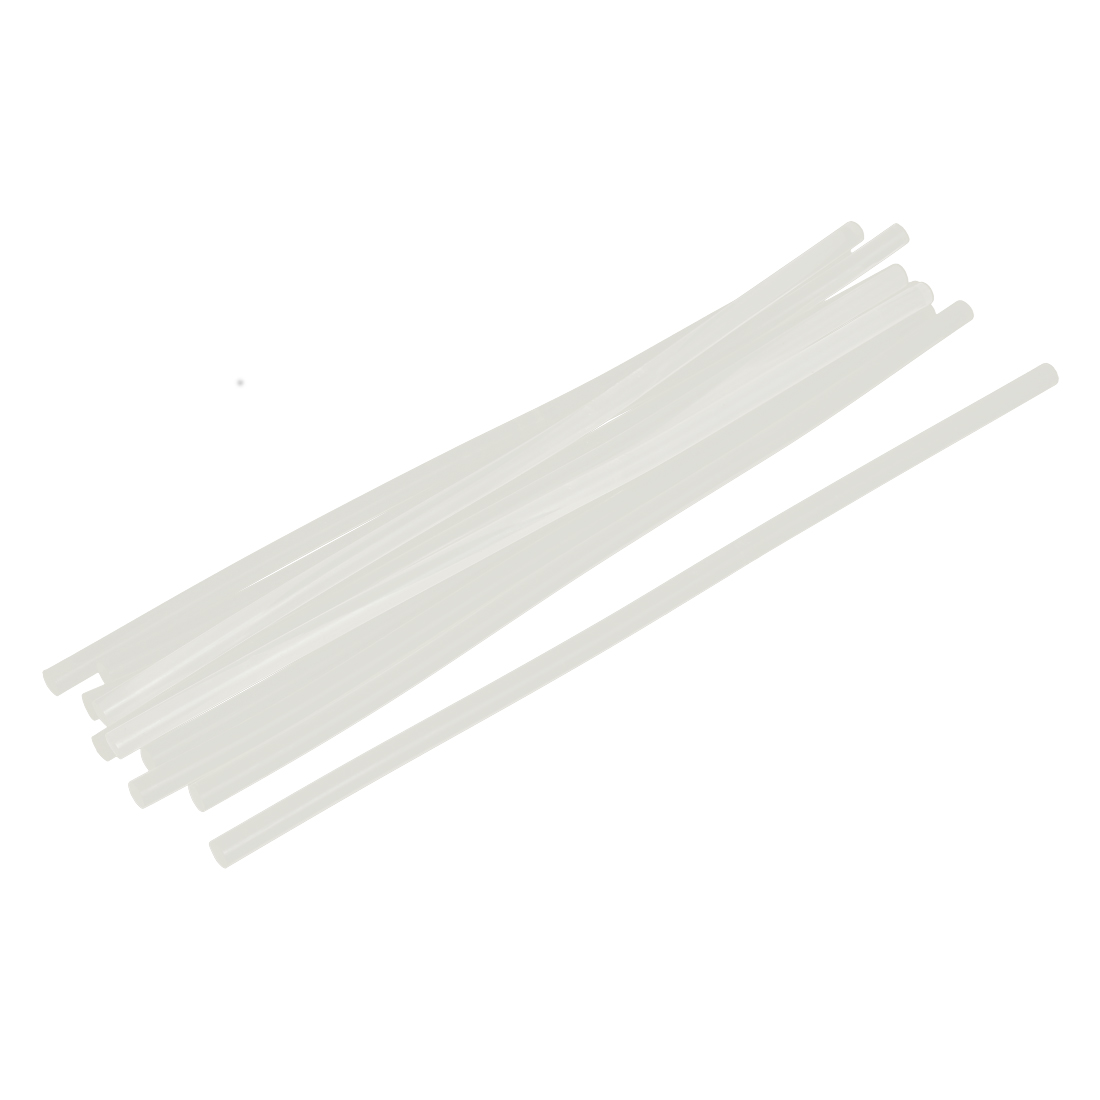 10 Pcs Clear White Hot Melt EVA Glue Adhesive Sticks 7x270mm